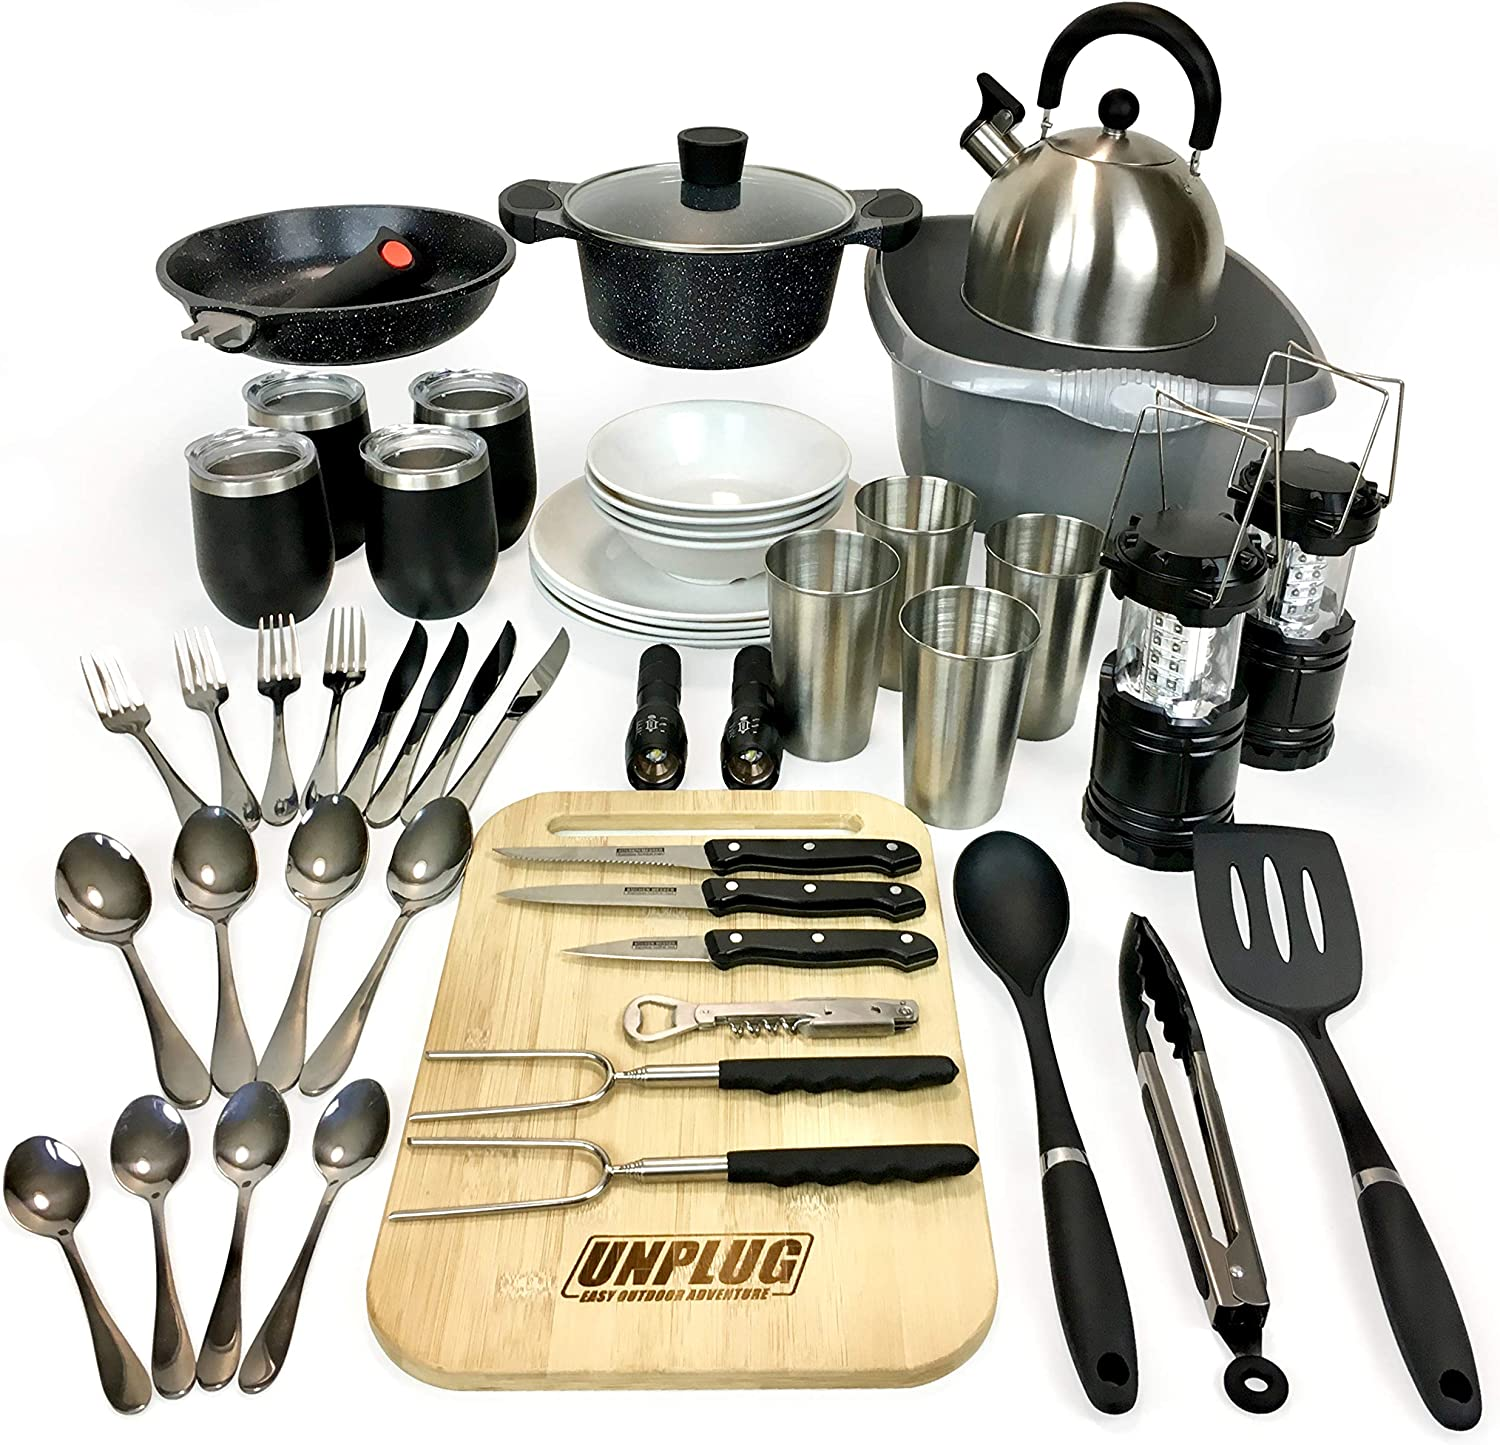 CAMPING COOKWARE FOR FAMILY OF Nonstick Quality PACKAGE. Max 83% OFF 4 Campi Memphis Mall